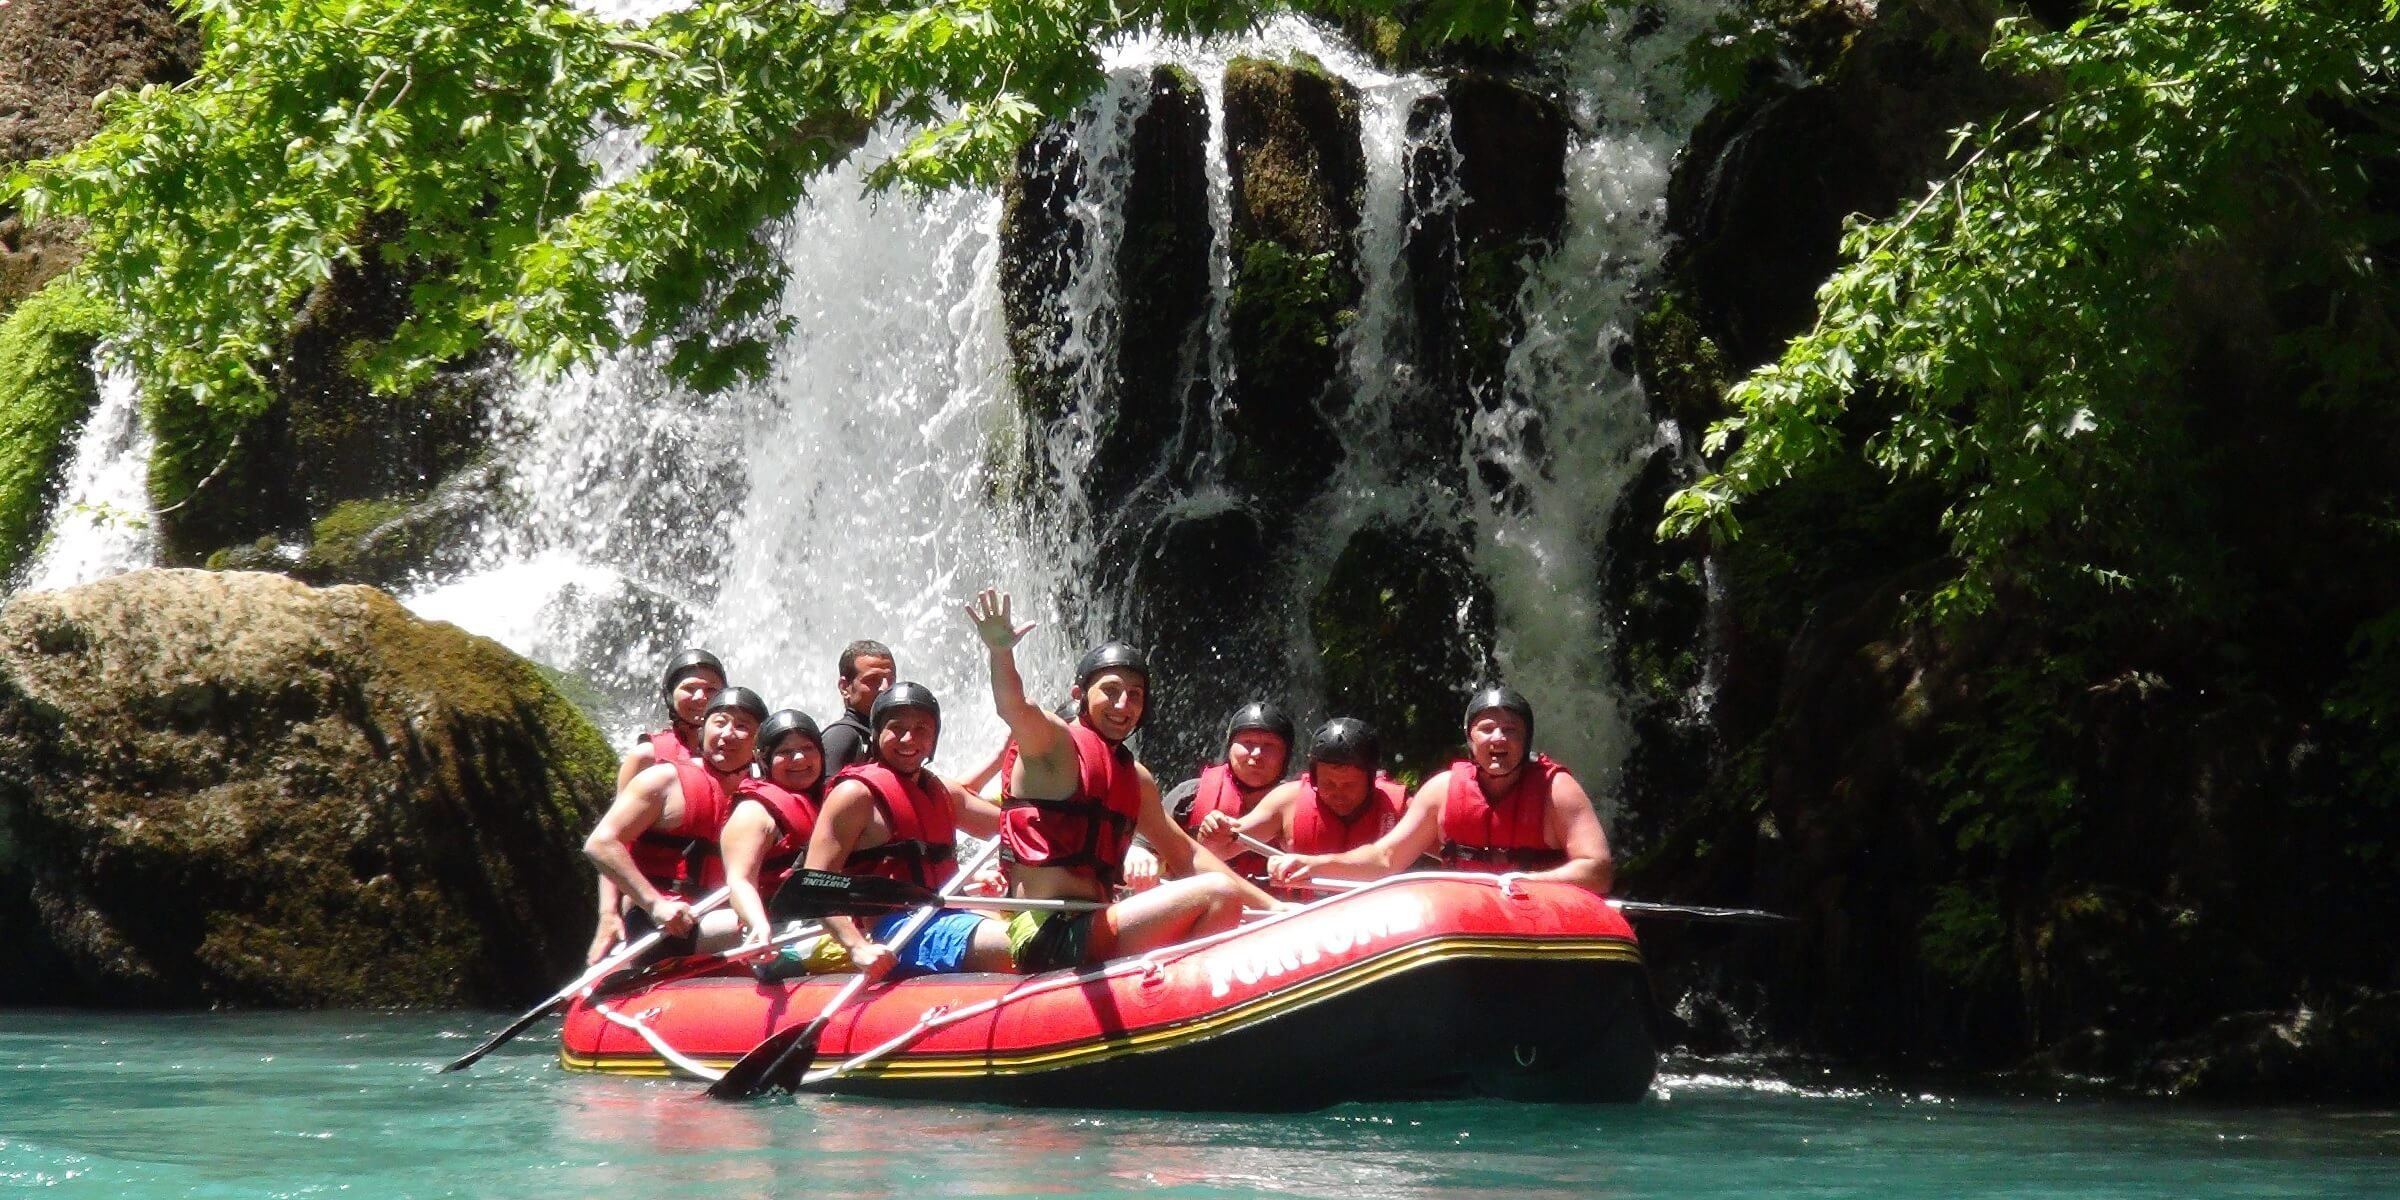 Rafting in Costa Rica